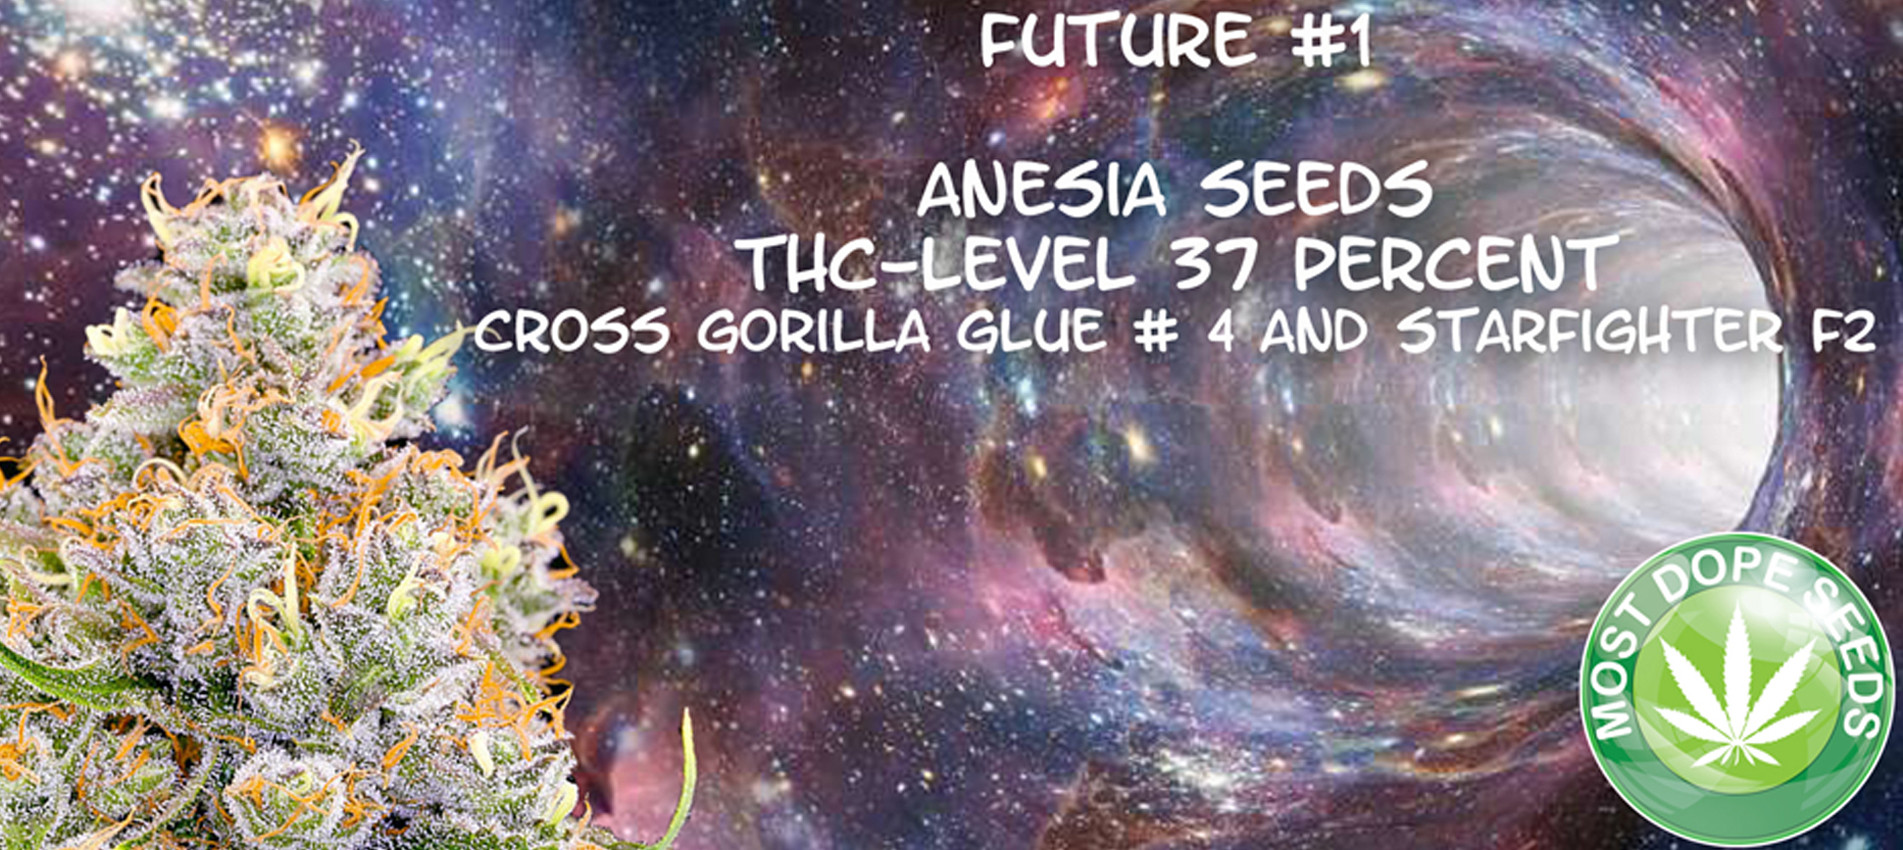 Future #1 Anesia Seeds